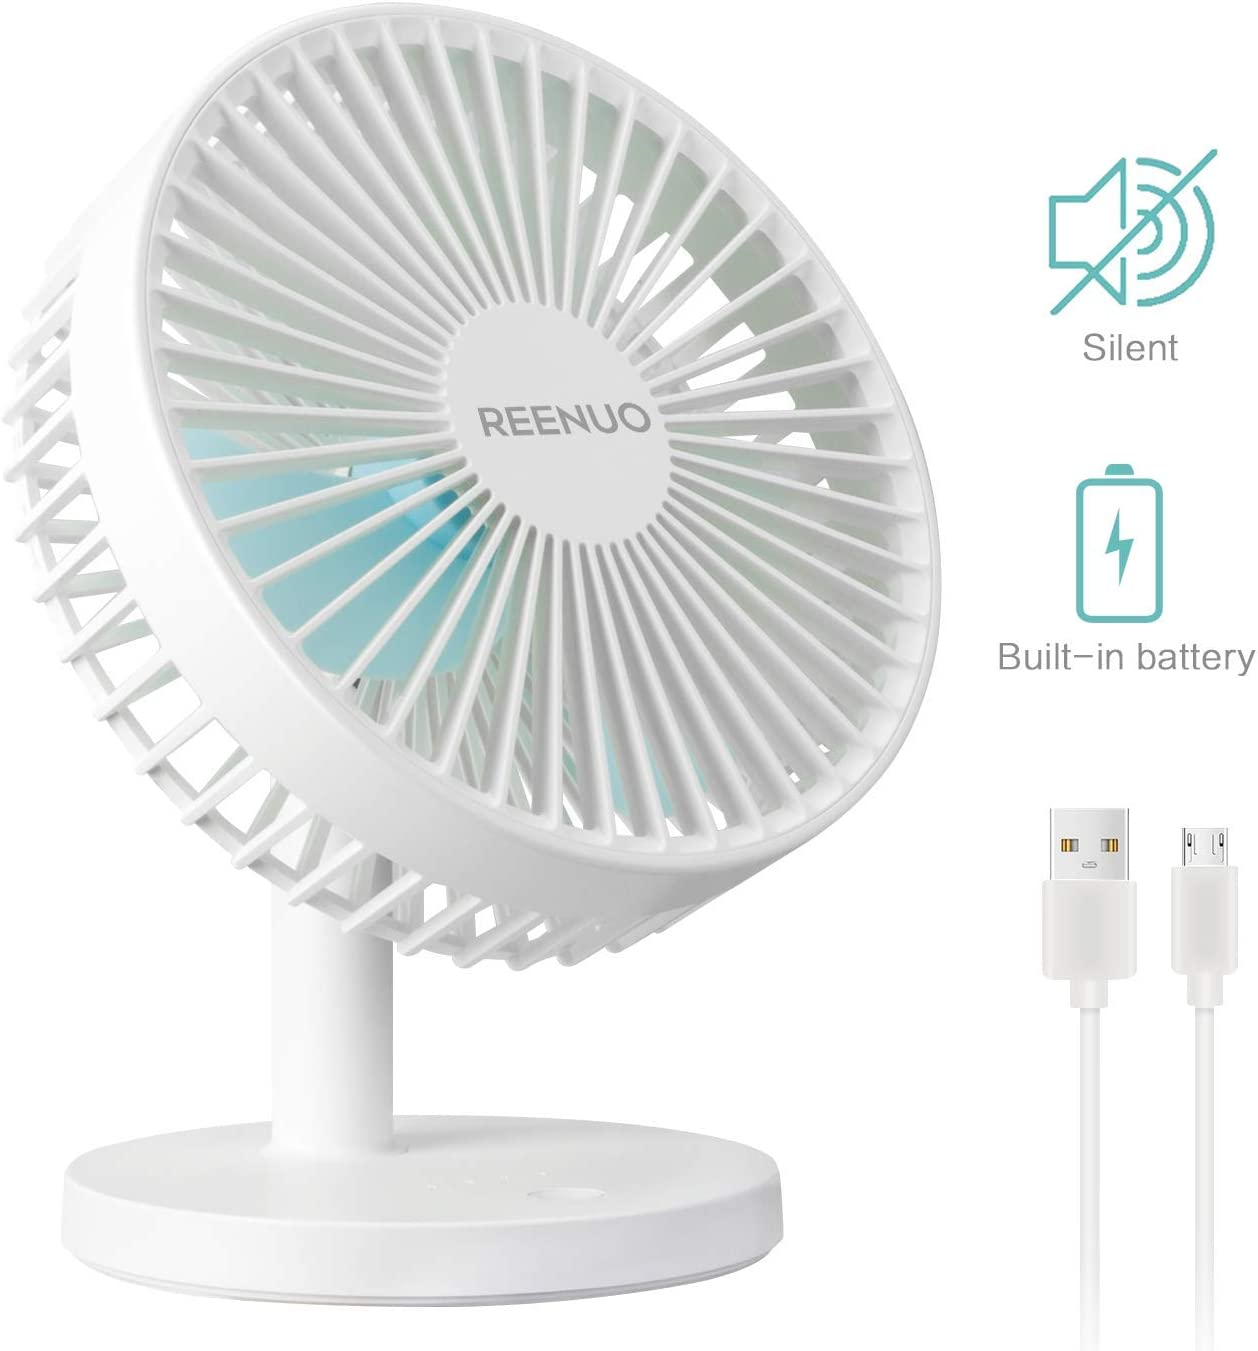 REENUO Table Fan Super Quiet 7 Inch Desk Fan,3 Speeds Rechargeable Battery Powered USB Fan for Office,Home,Travel,Camping White